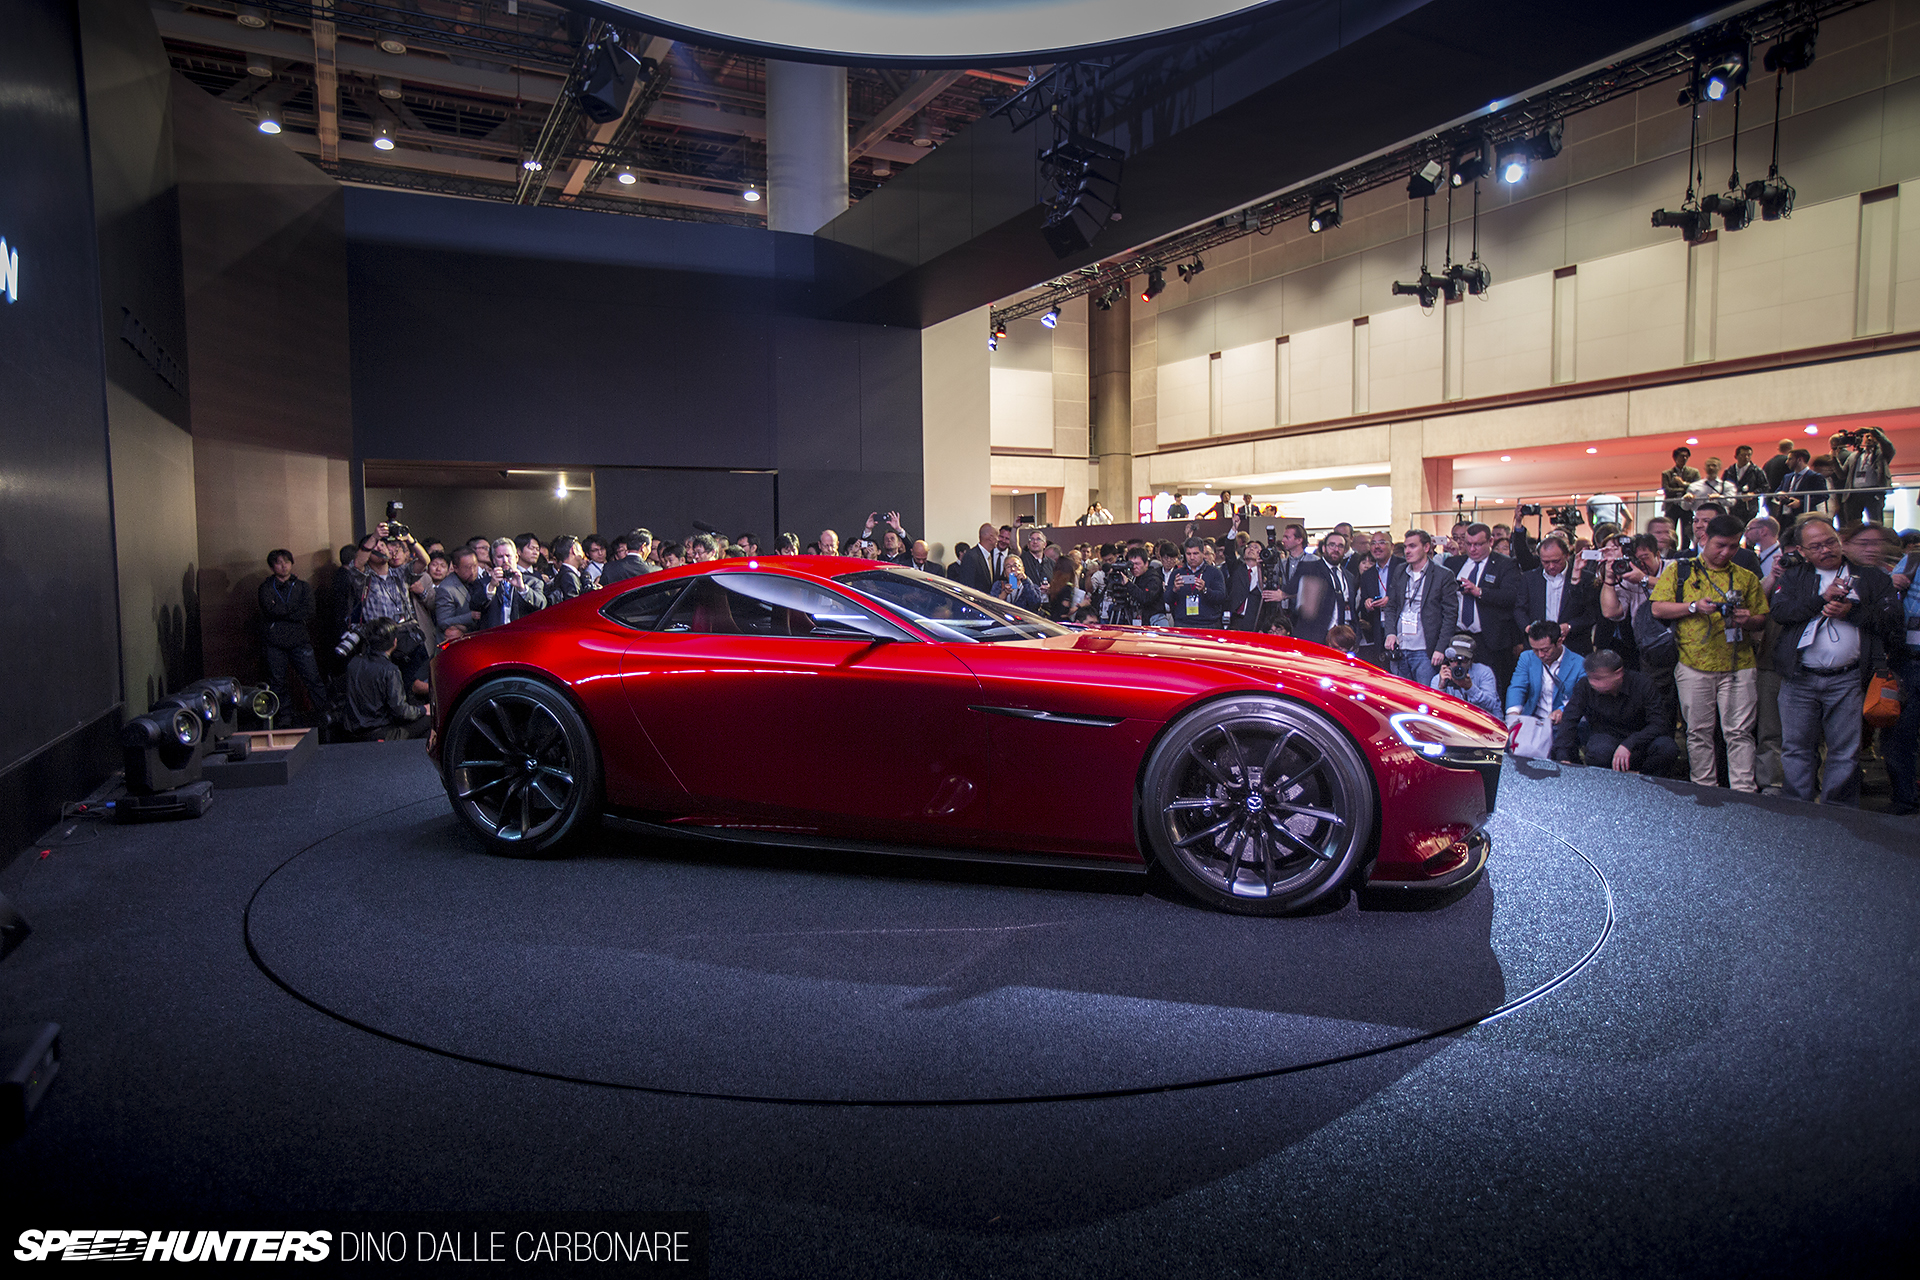 Vip Cars Hd Wallpaper Mazda S Rotary Dream The Rx Vision Concept Revealed